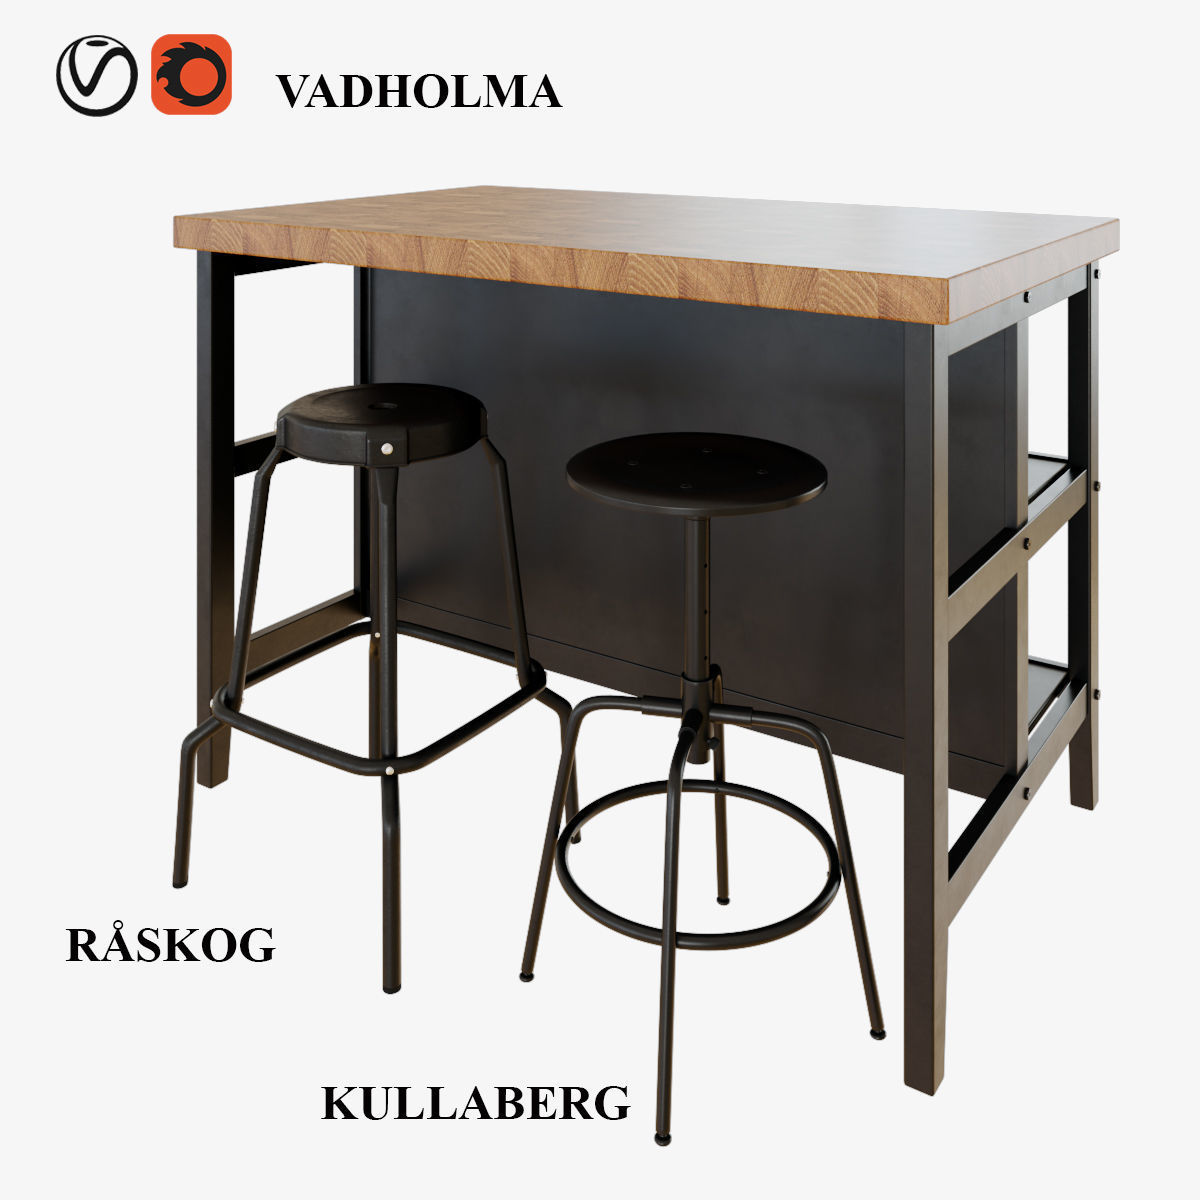 IKEA VADHOLMA kitchen table and stools | 3D model